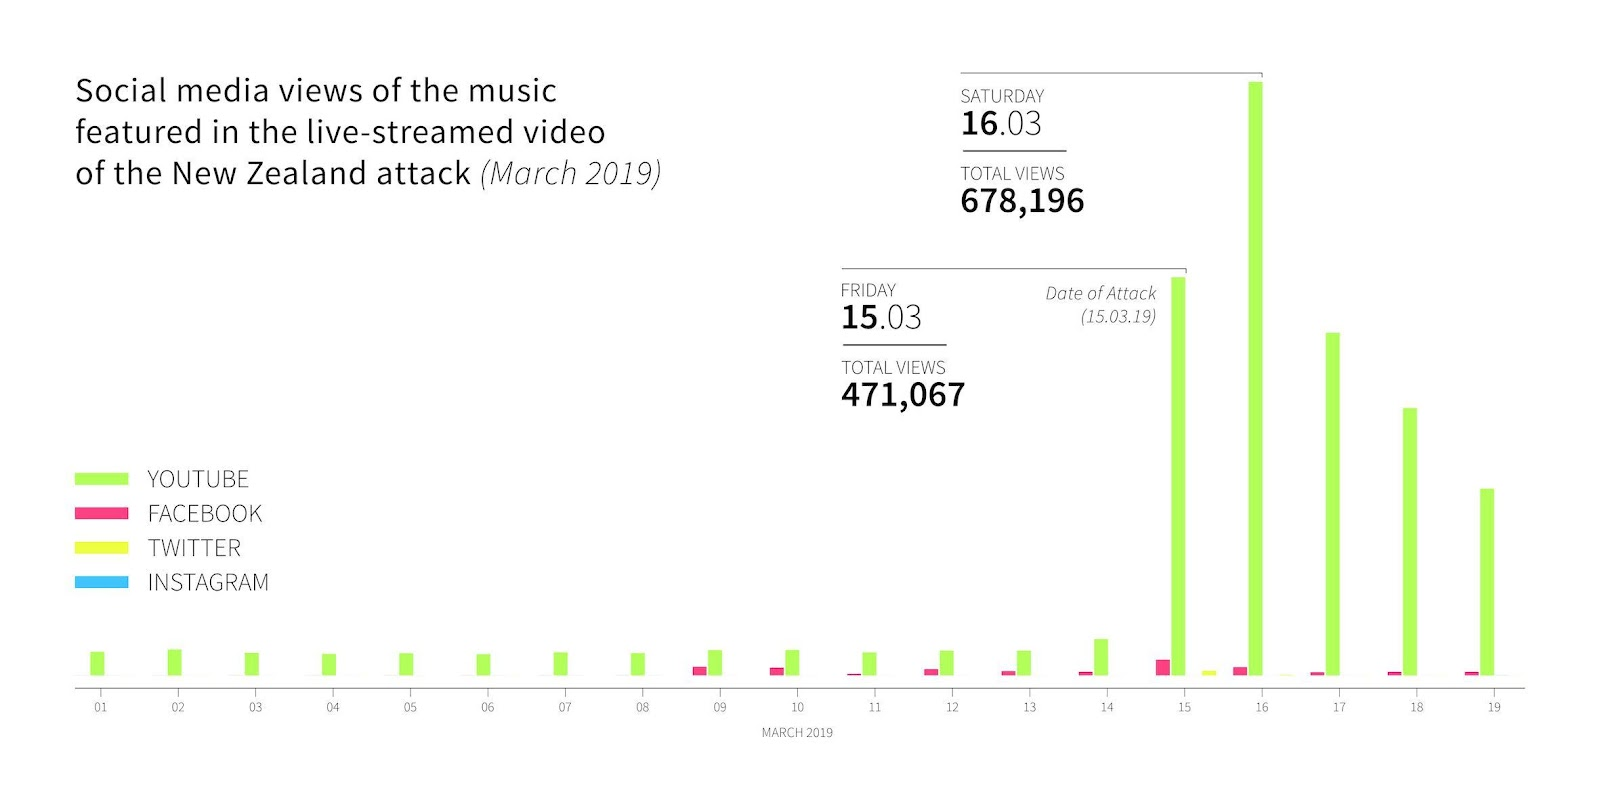 Social media views of the music featured in the live-streamed video of the New Zealand attack (March 2018)